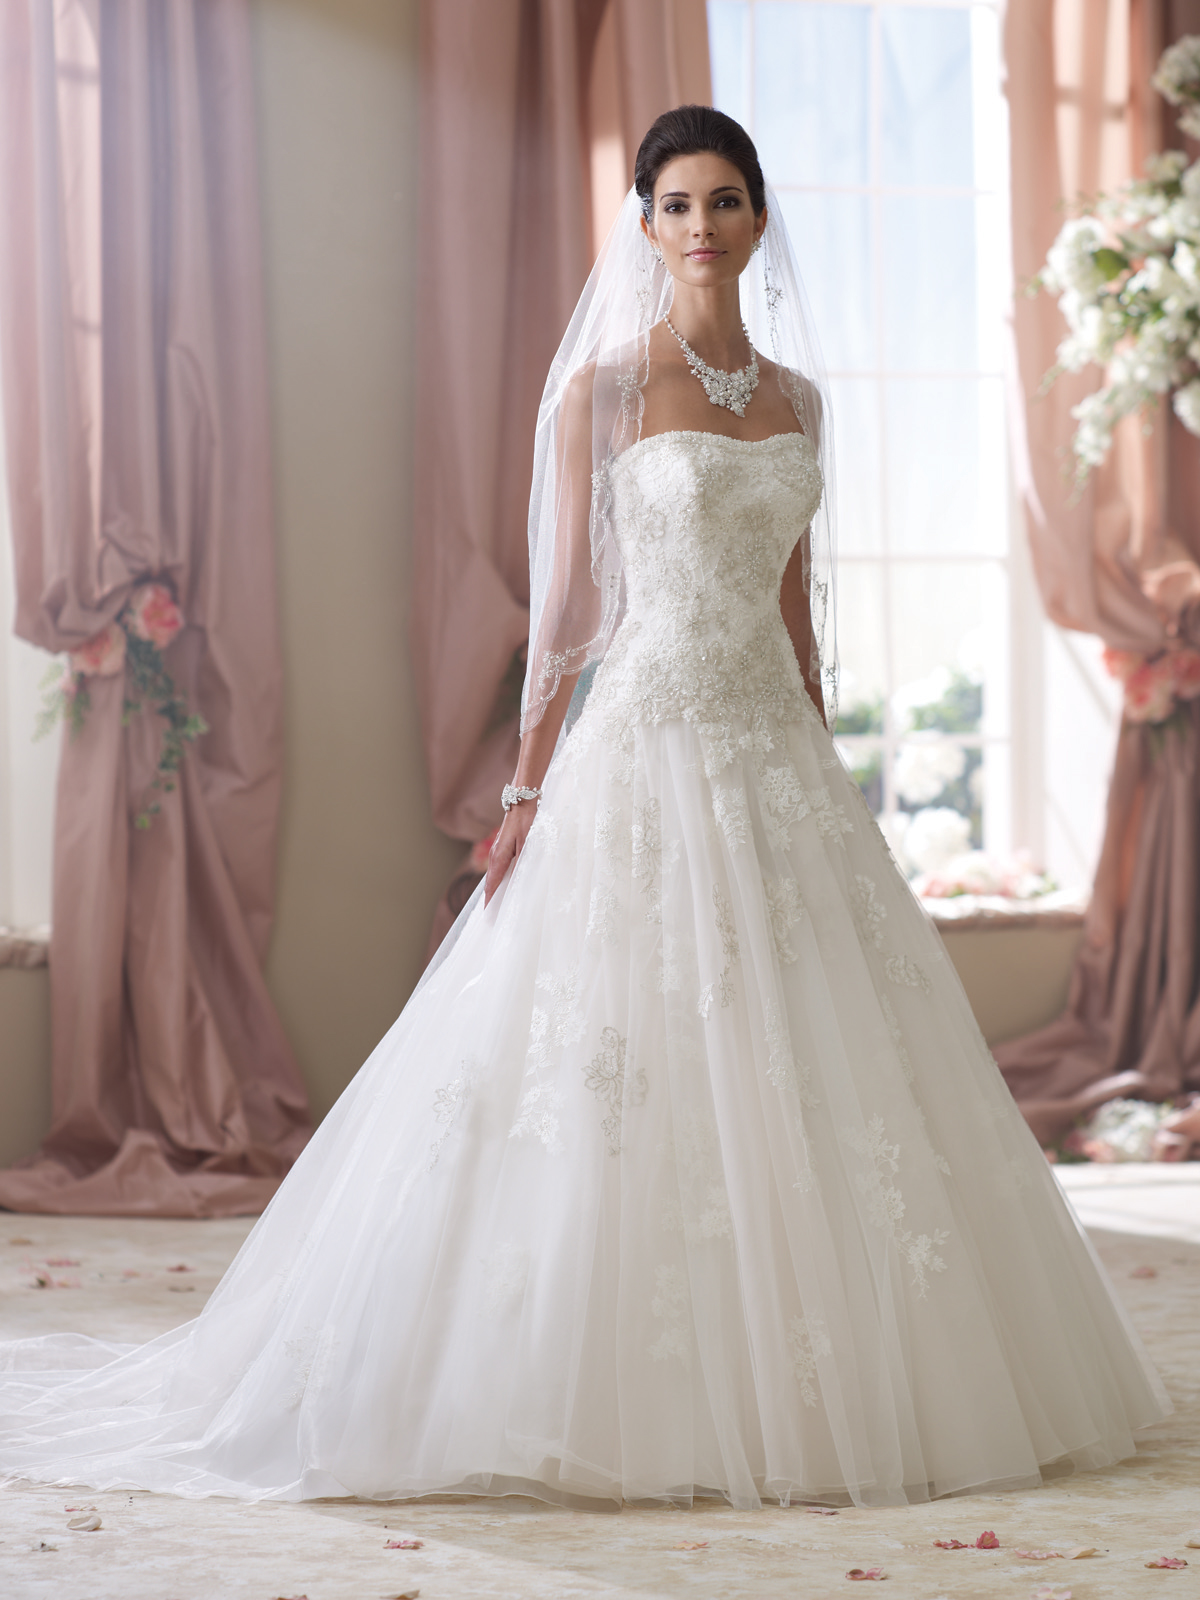 ANN MATTHEWS BRIDAL ALBUQUERQUE WEDDING DRESSES